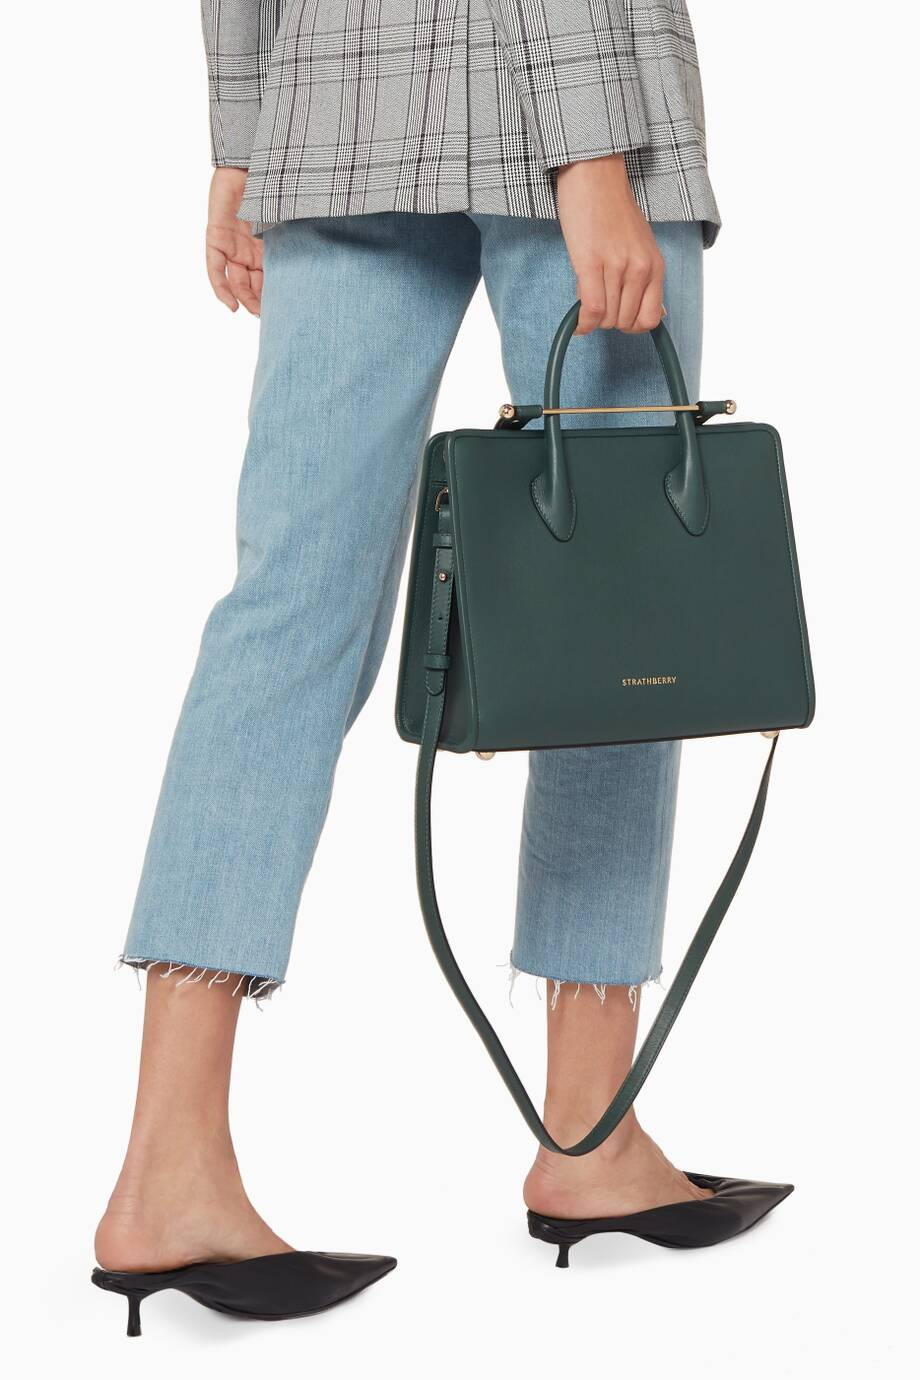 ab2a6160bc Shop Luxury Strathberry Dark-Green Midi Leather Tote Bag